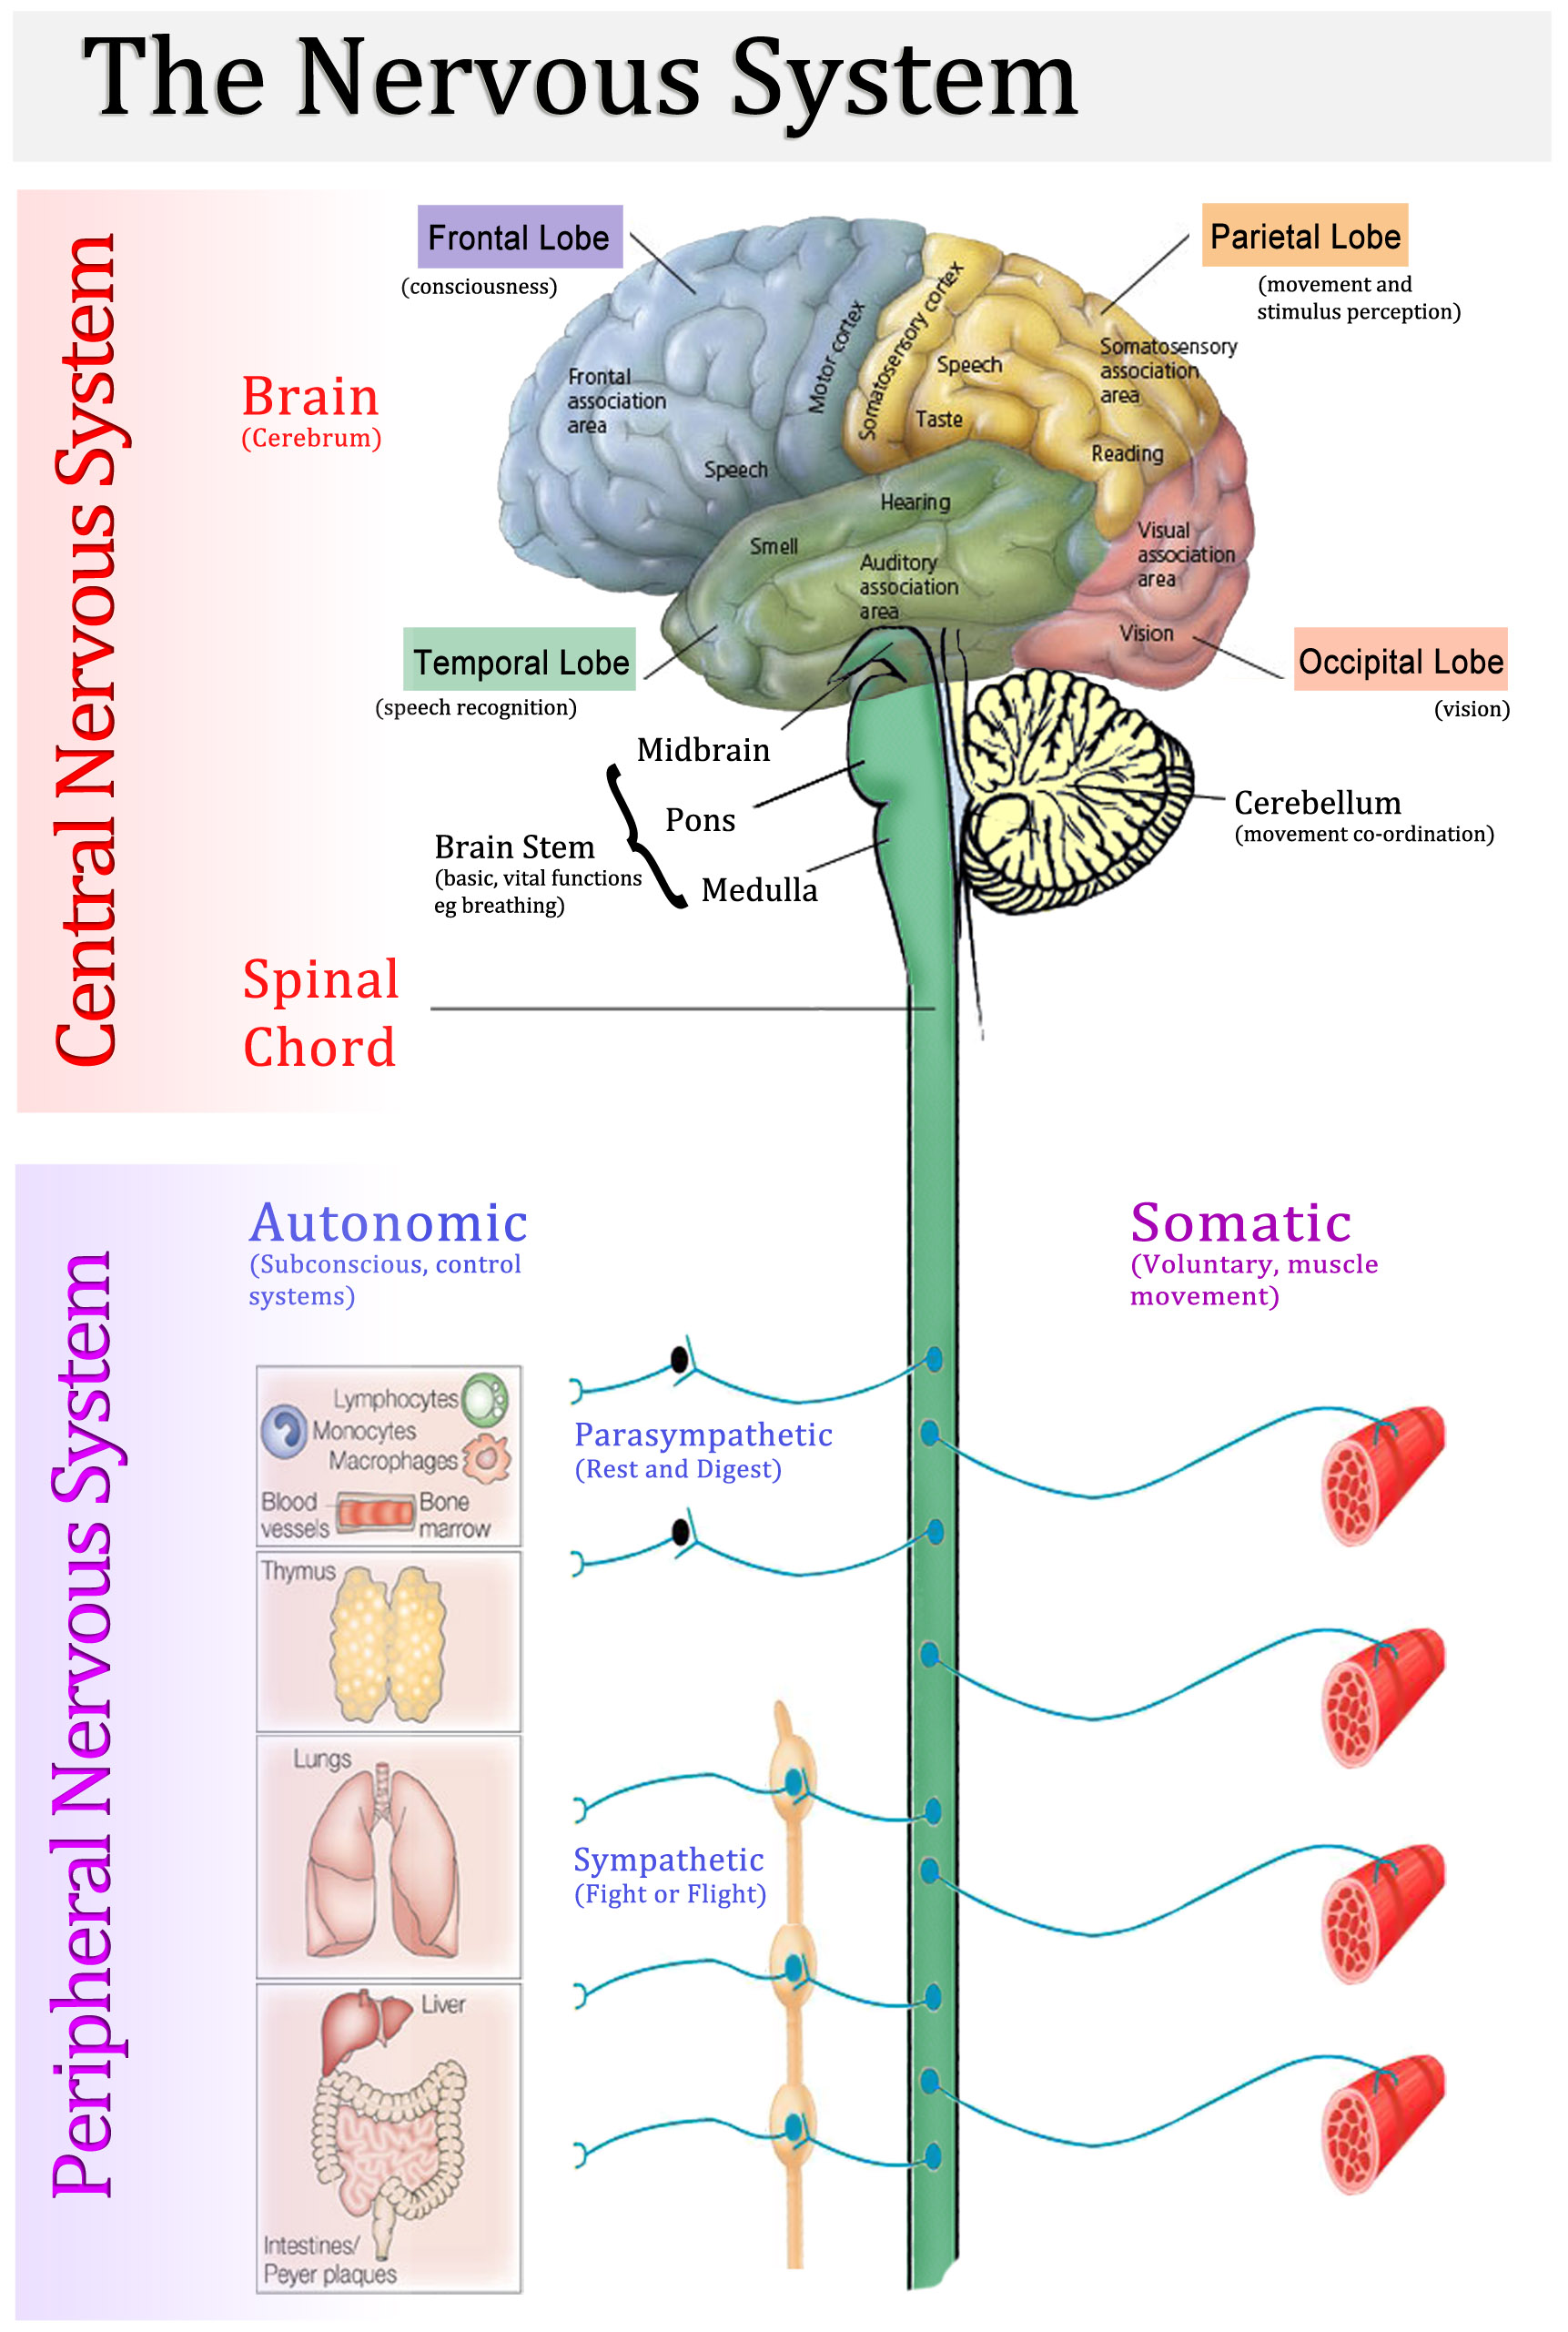 the nervous system Disorders of the nervous system include stroke, infections, such as meningitis, carpal tunnel syndrome, and functional disorders, such as headache and epilepsy.